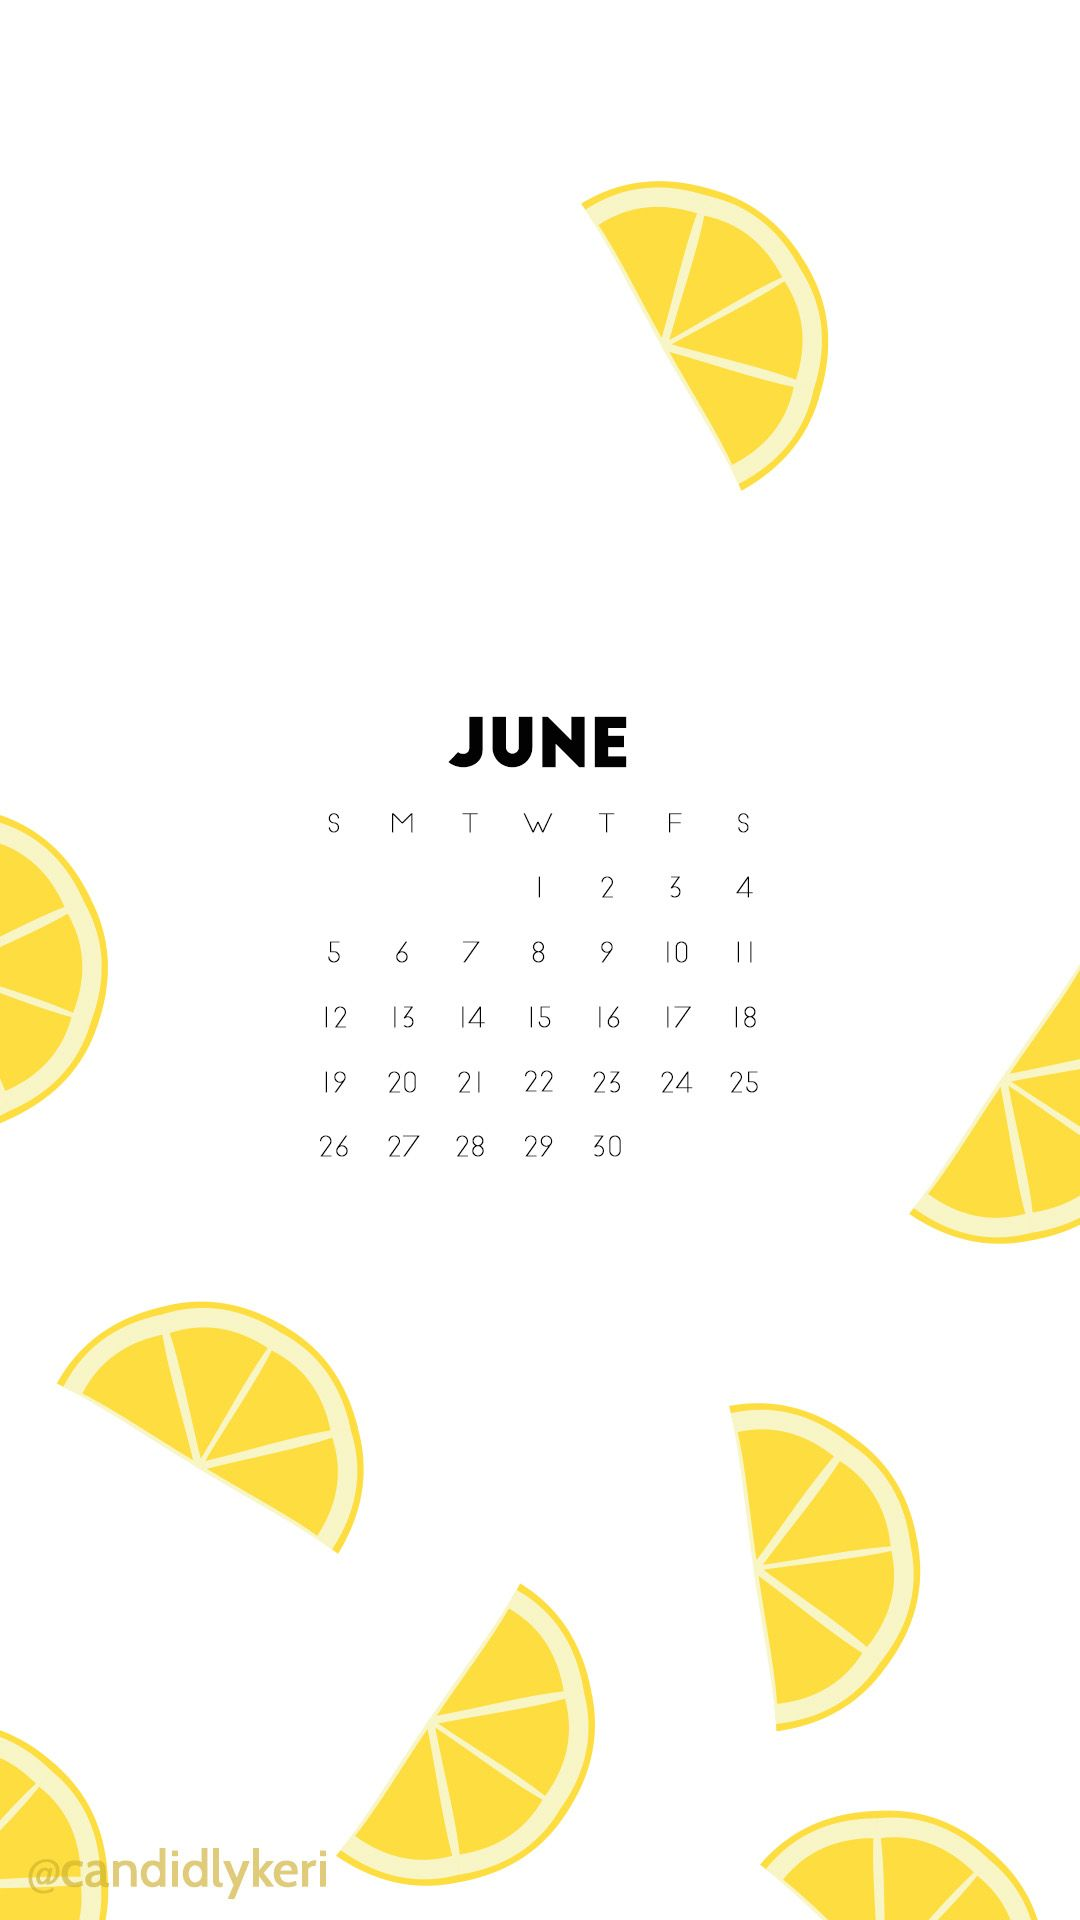 lemon fun lemonade june 2016 calendar wallpaper free download for iphone android or desktop background on